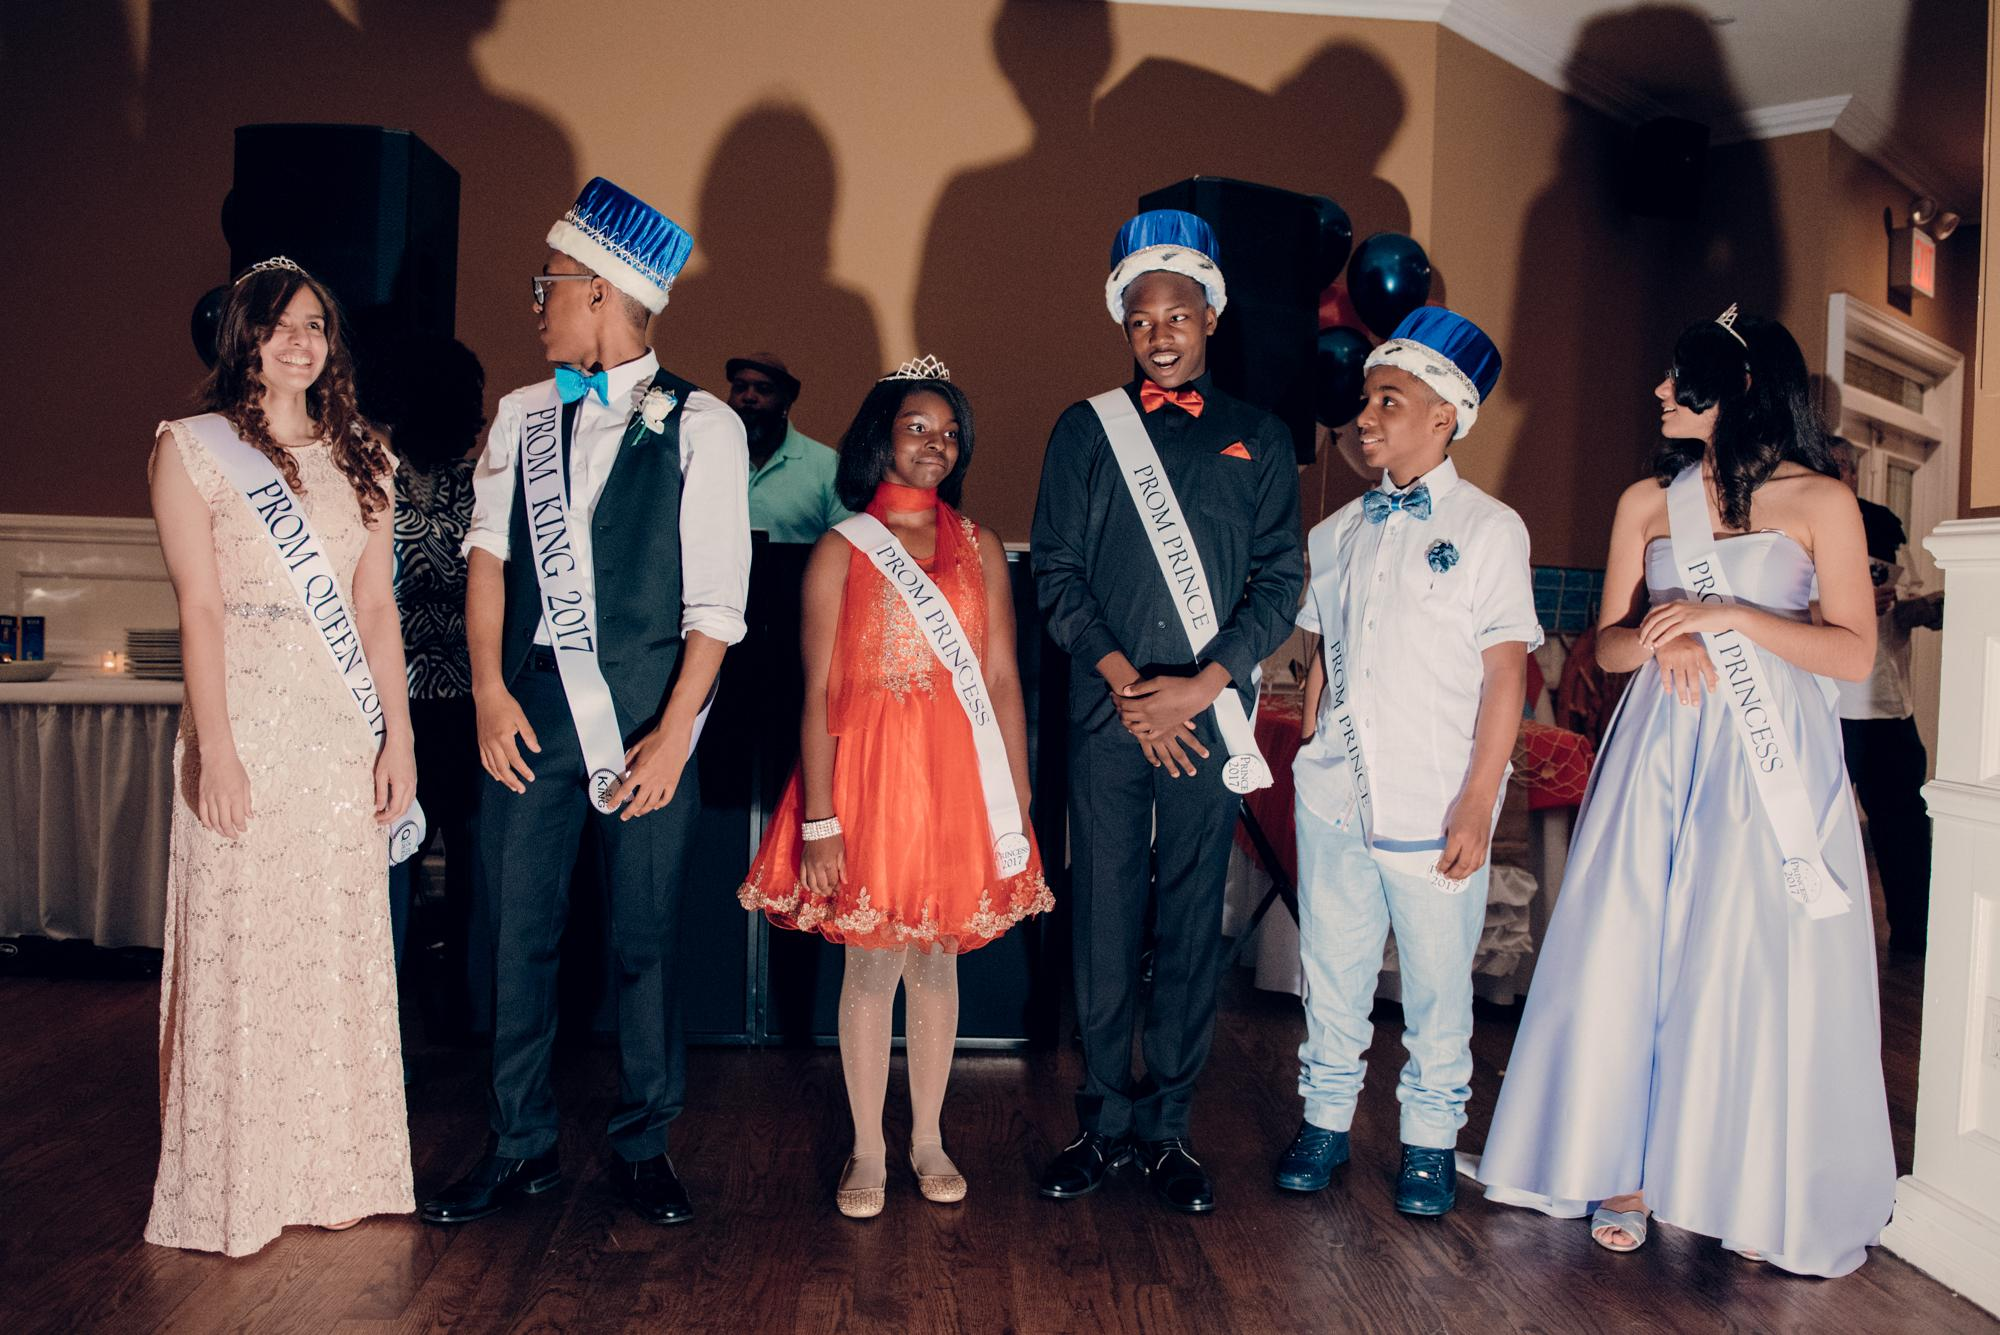 The prom king and queen with their court of 2 princesses and princes